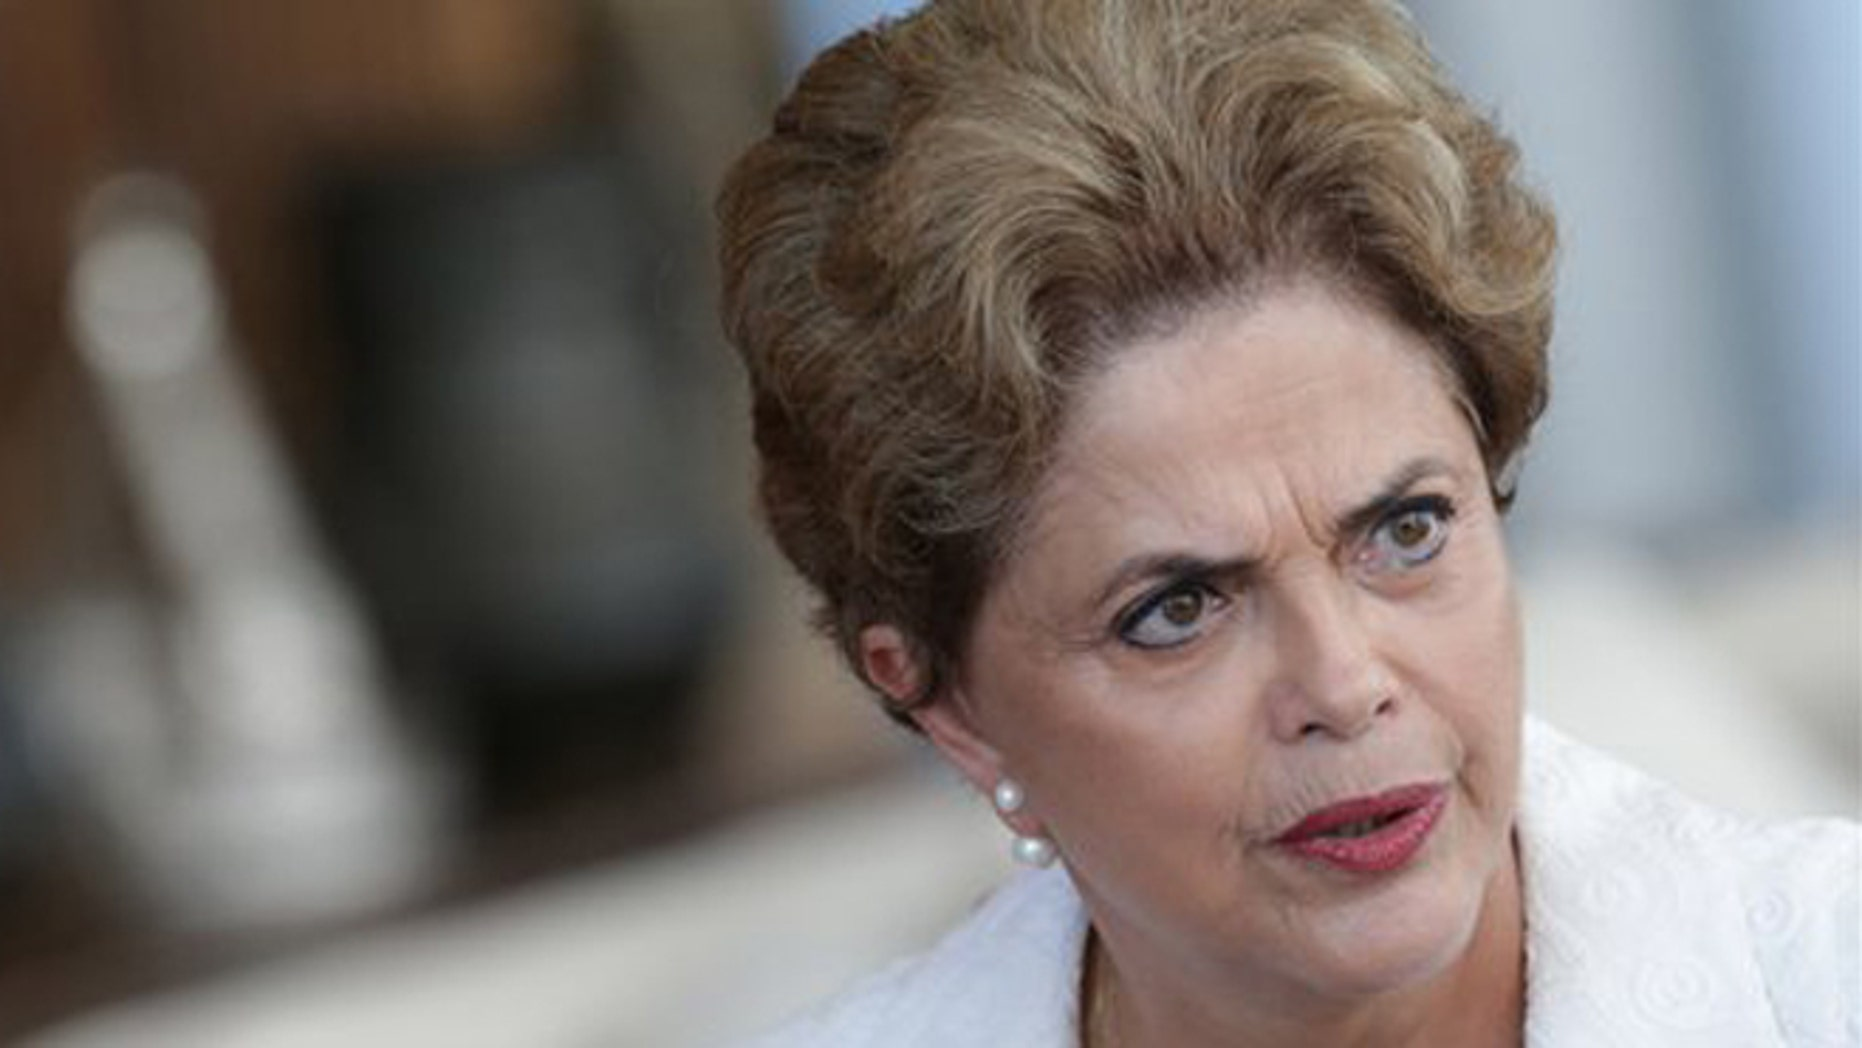 FILE - In this May 13, 2016, file photo, suspended Brazilian President Dilma Rousseff speaks during a press conference with the international press corps, at the presidential residence Alvorada Palace in Brasilia, Brazil. Rousseff was quoted in an interview published on Sunday, May 29, 2016, that her impeachment is aimed at stopping the current corruption investigation against several politicians and businessmen. (AP Photo/Eraldo Peres, File)